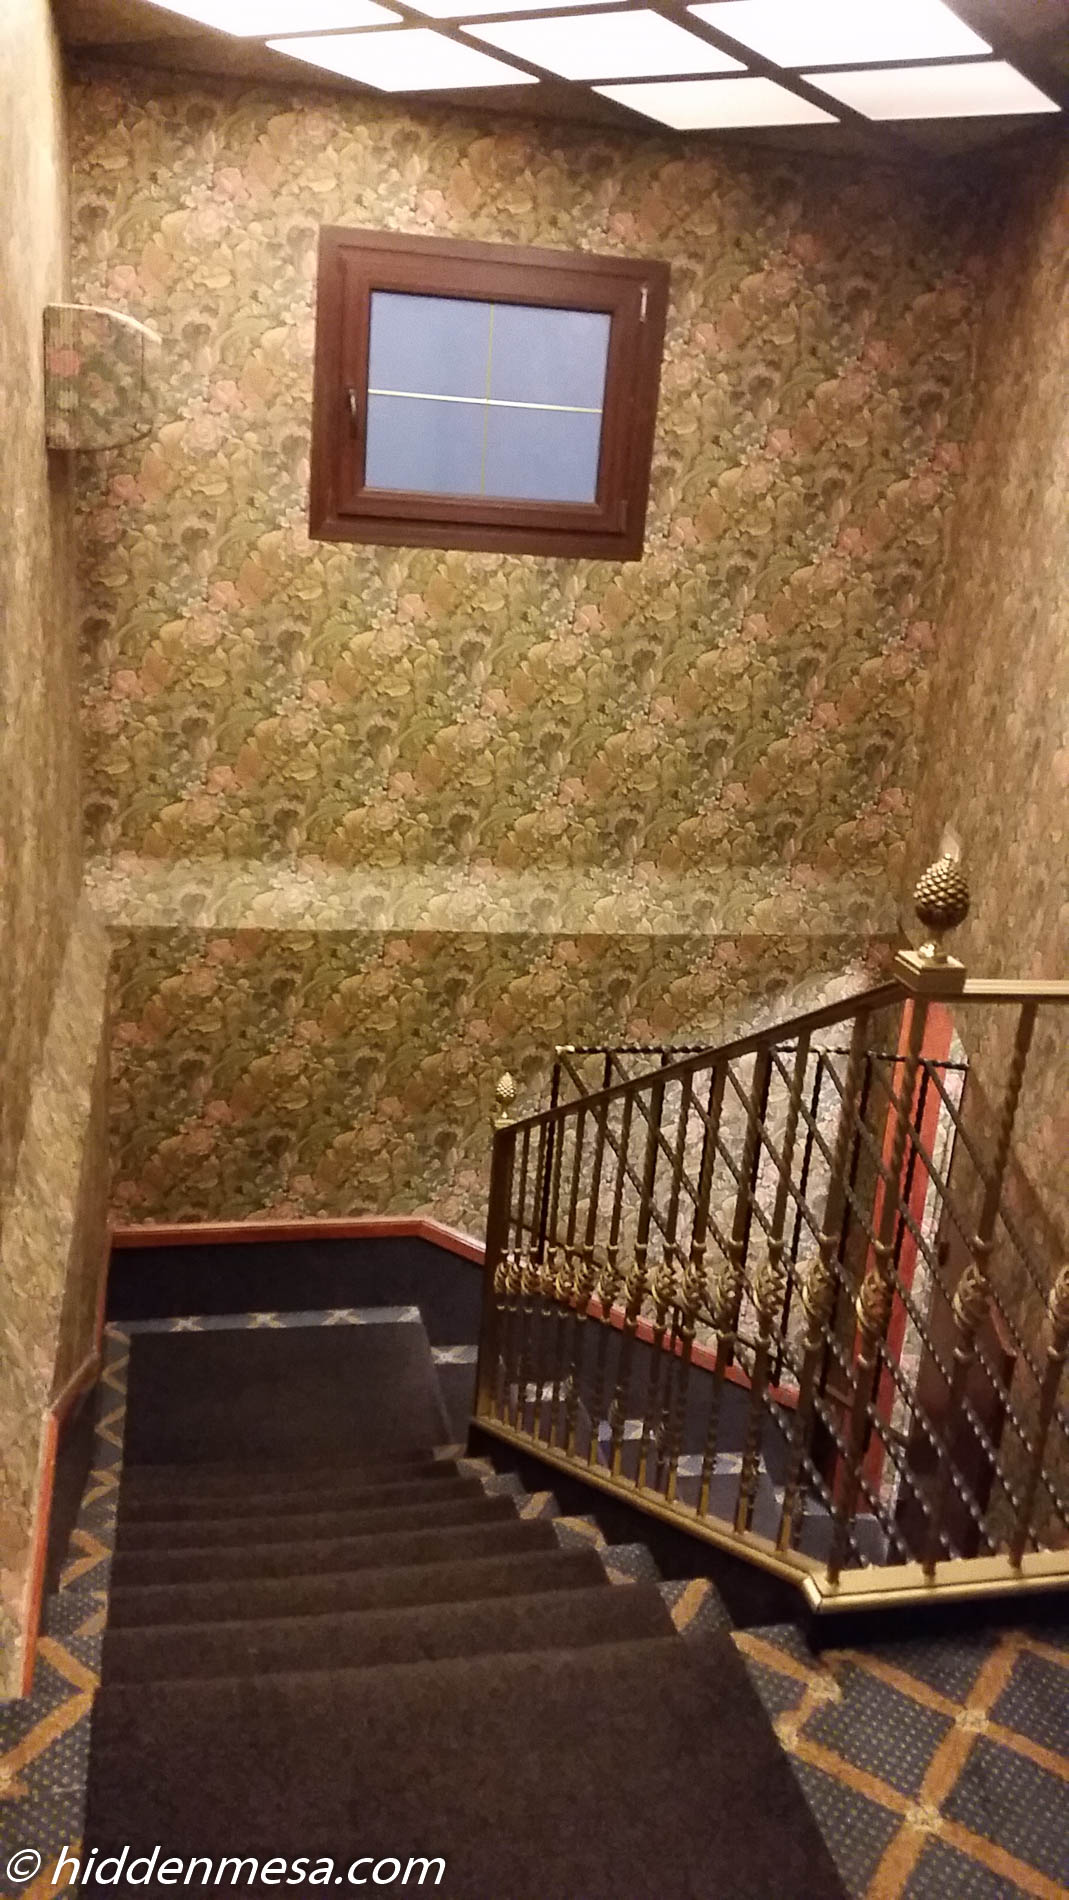 Stairs and Wallpaper